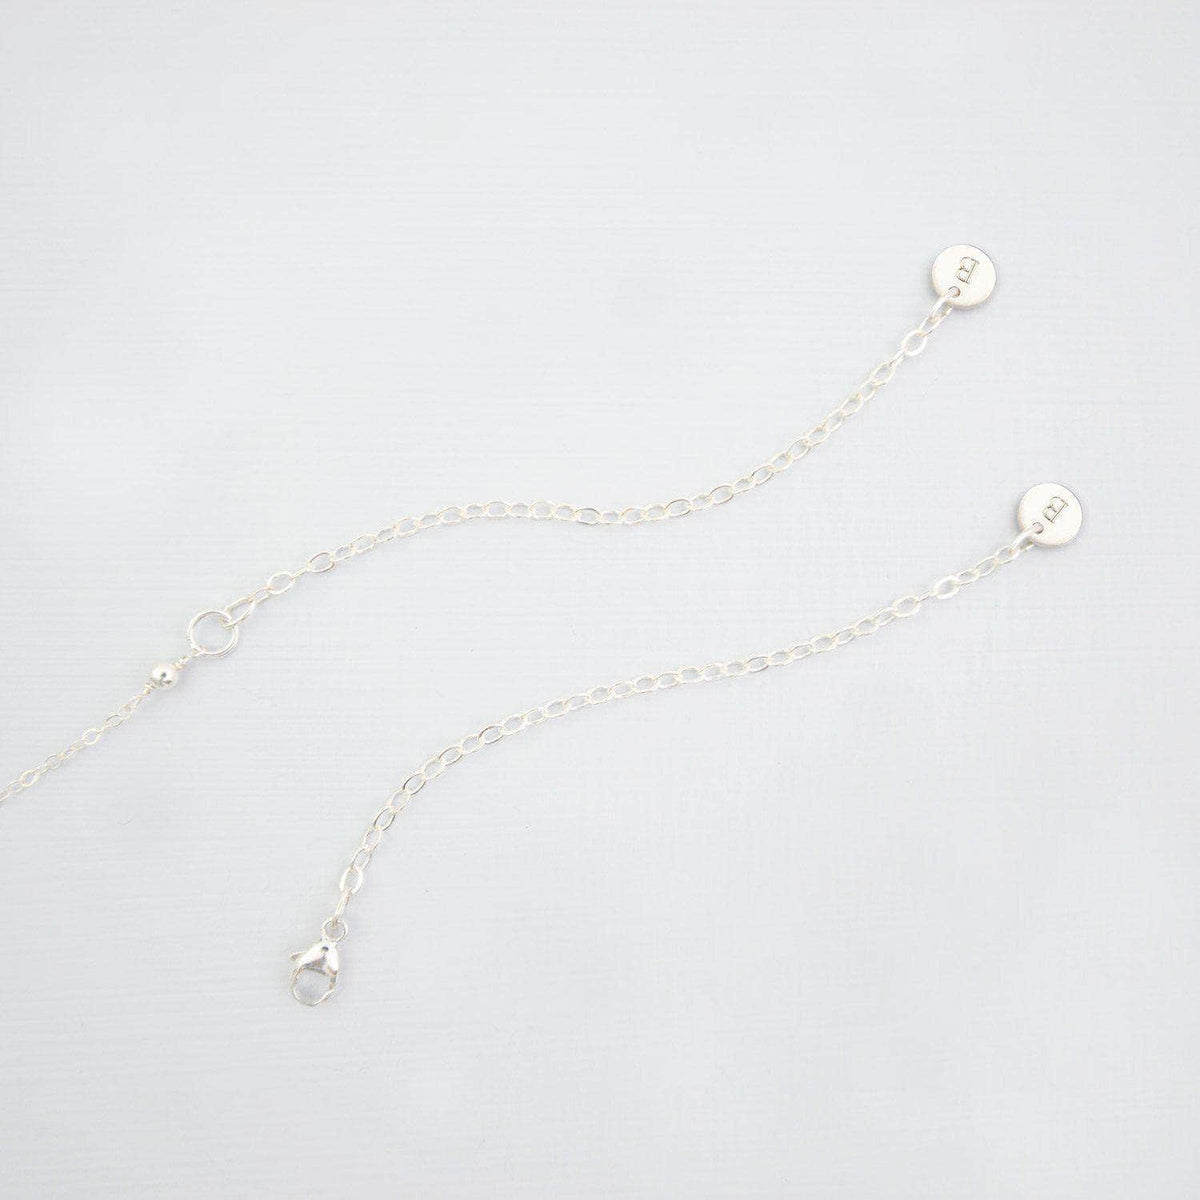 Wedding Necklace Adjustable Extender (Removable Or Fixed)